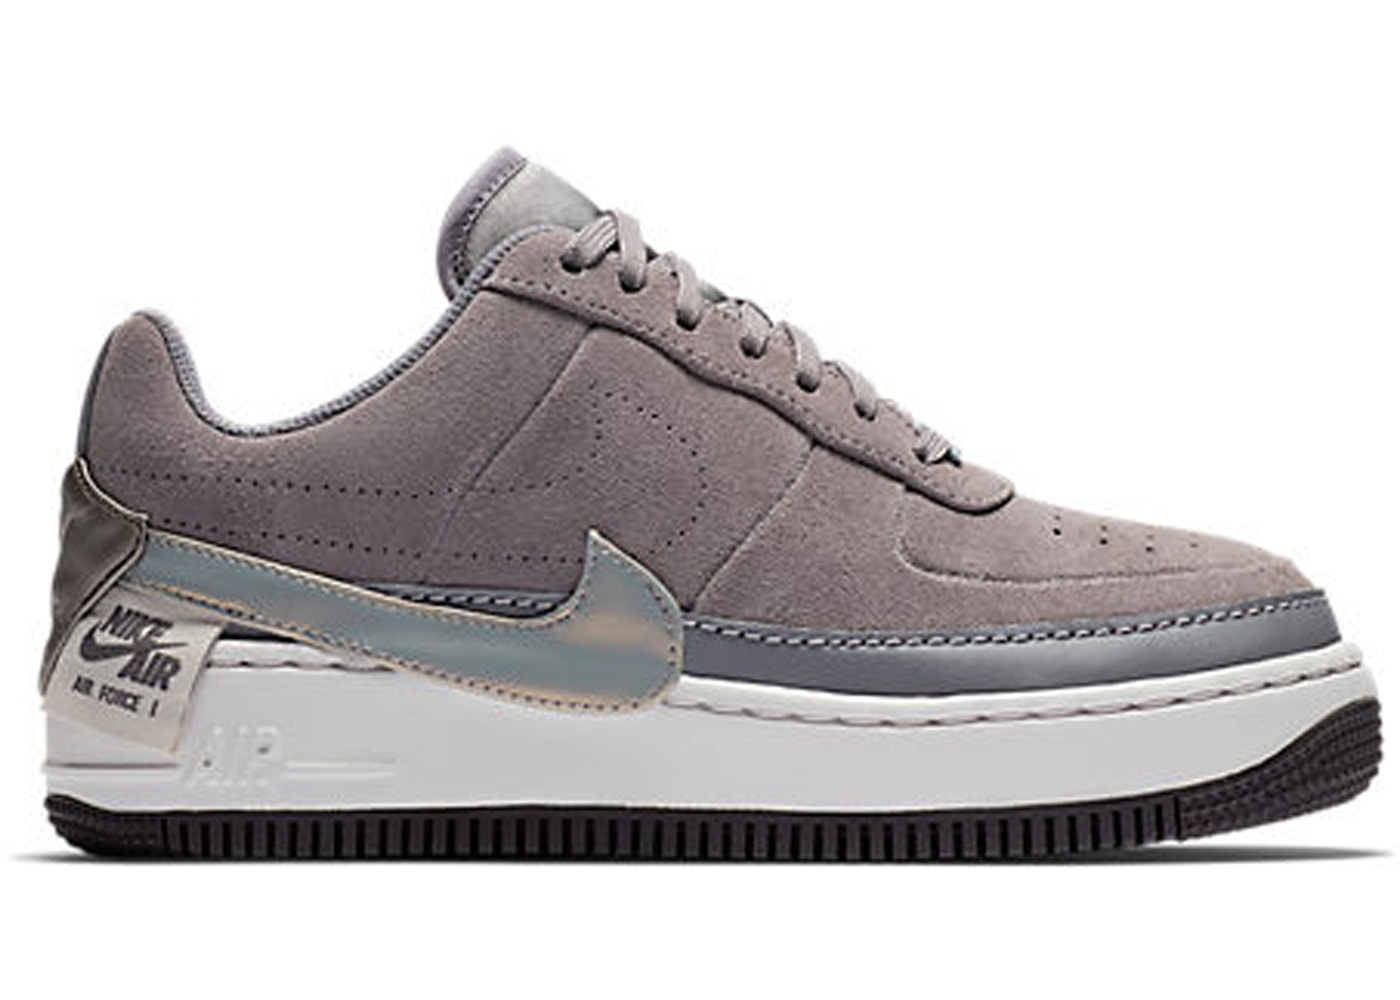 Nike Air Force 1 Shoes Lowest Ask